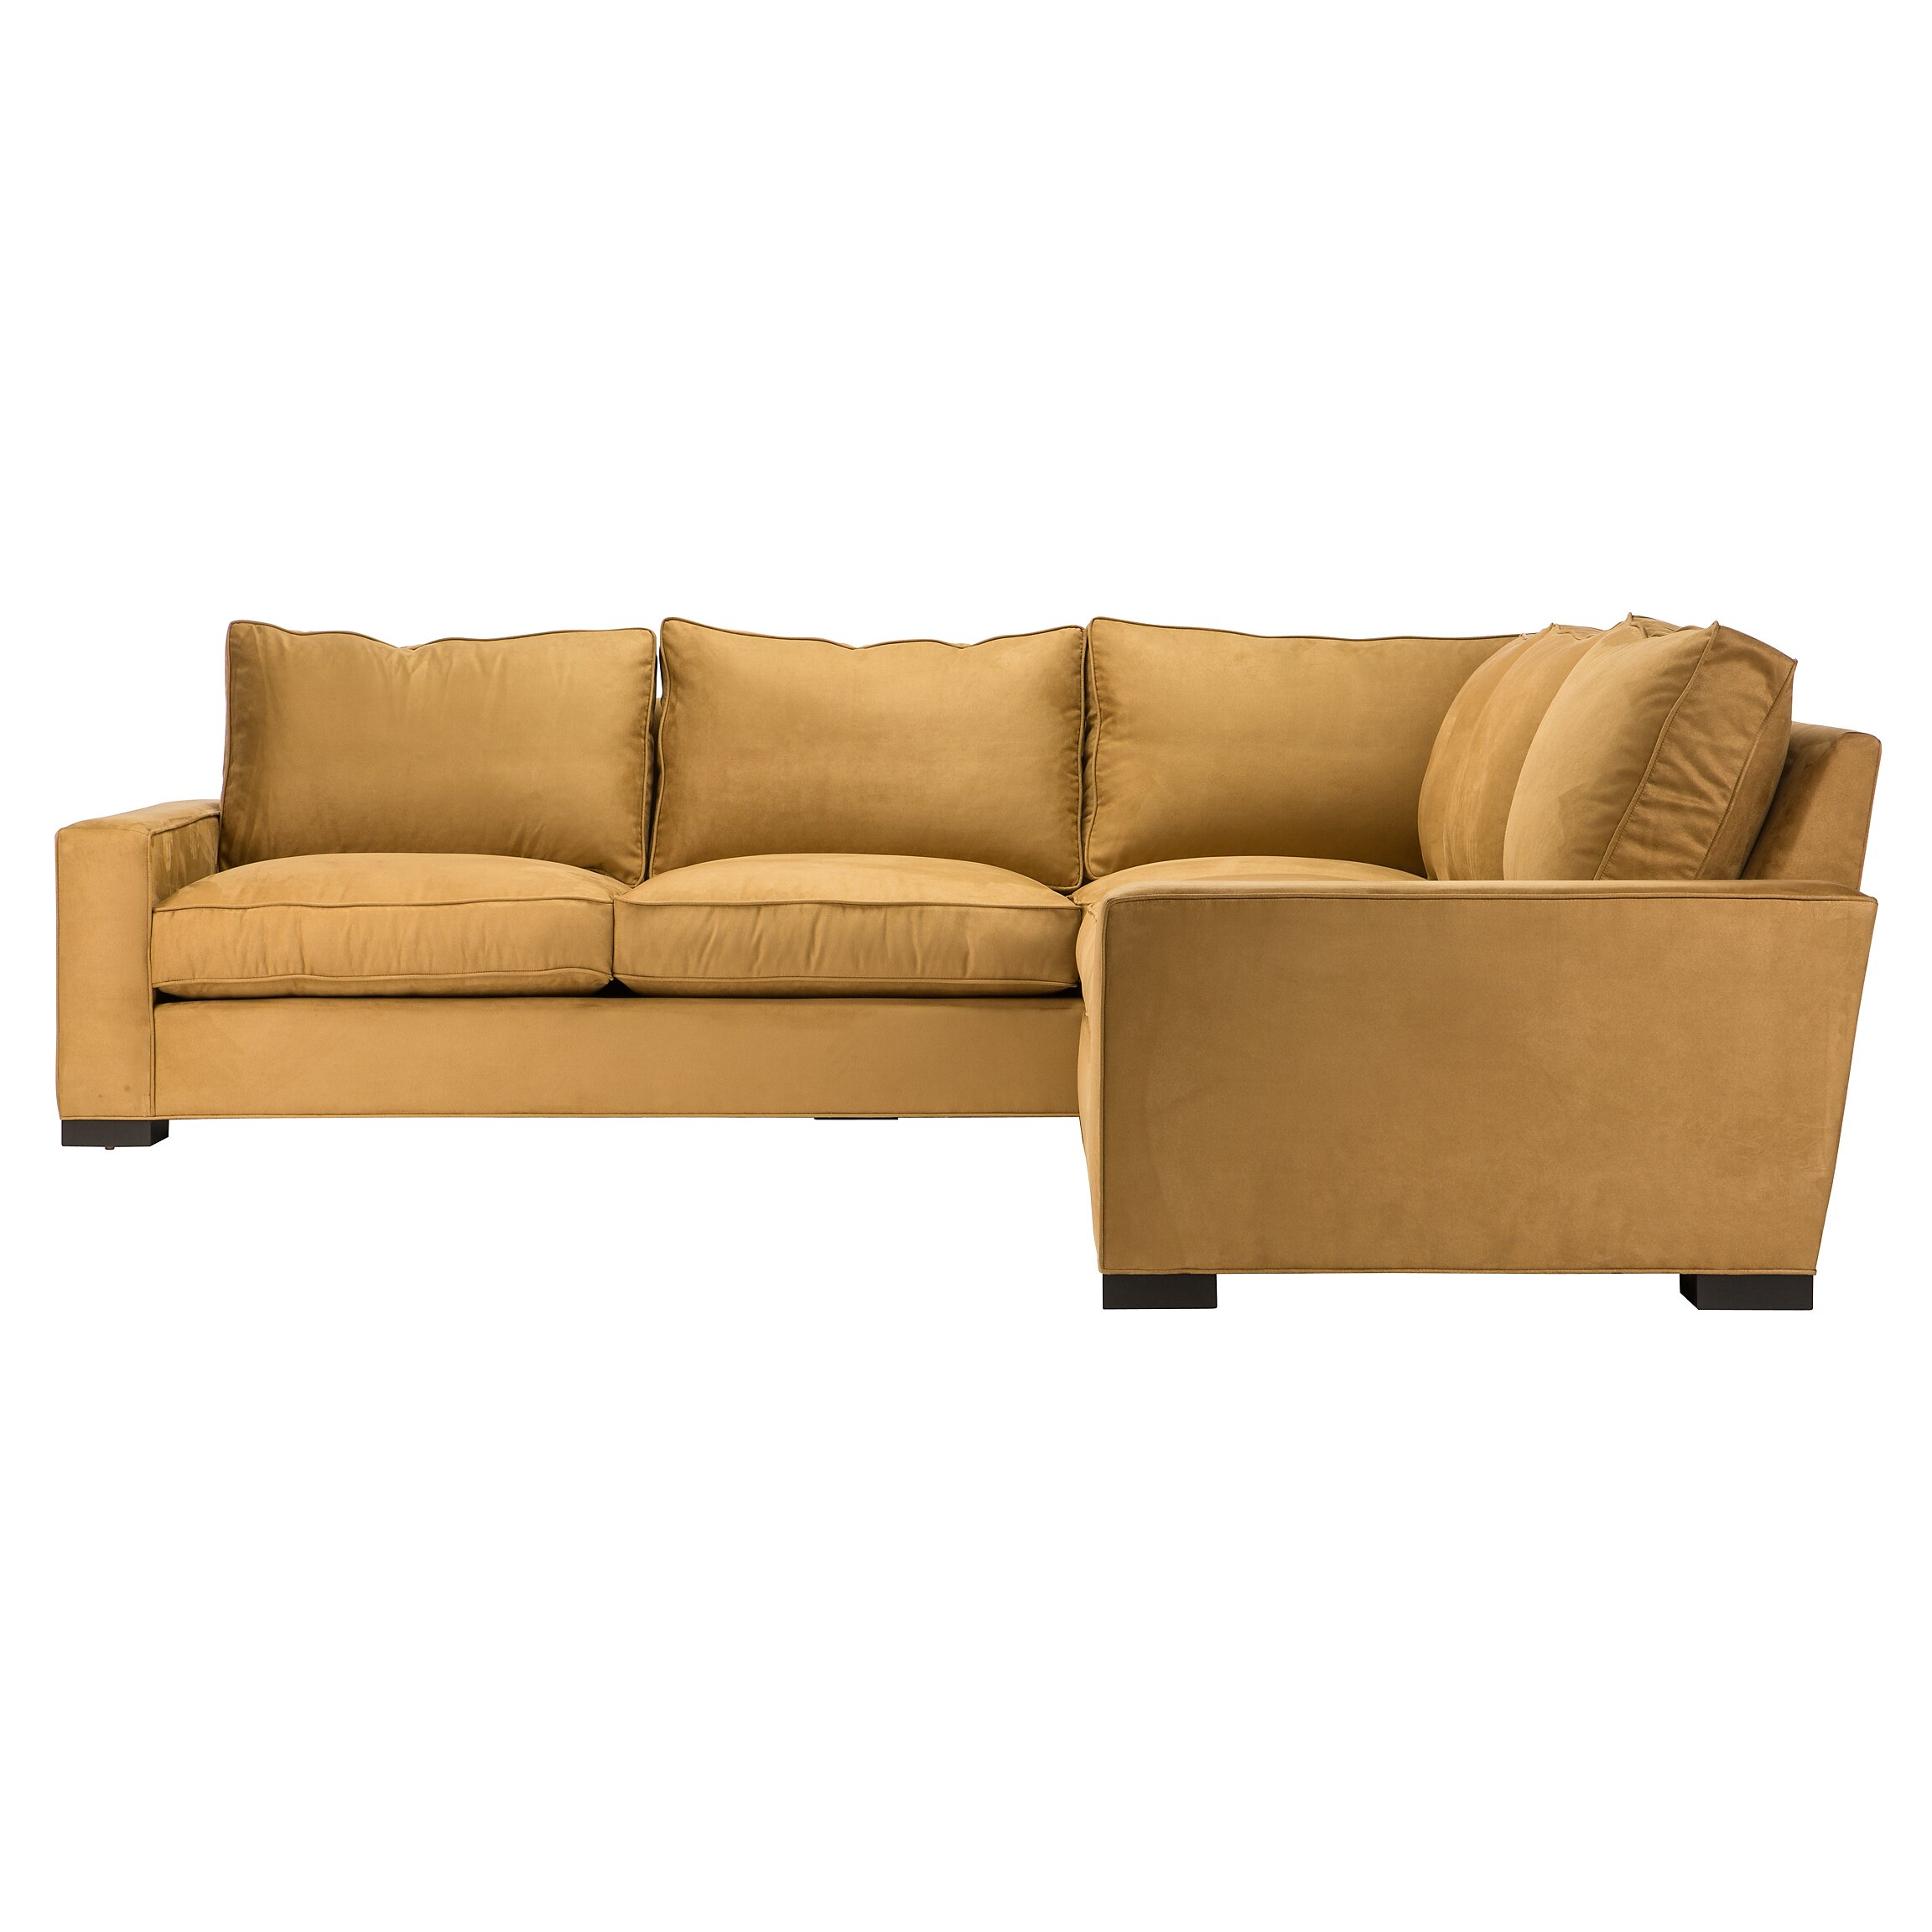 Jaxon madrid sectional wayfair for Furniture madrid